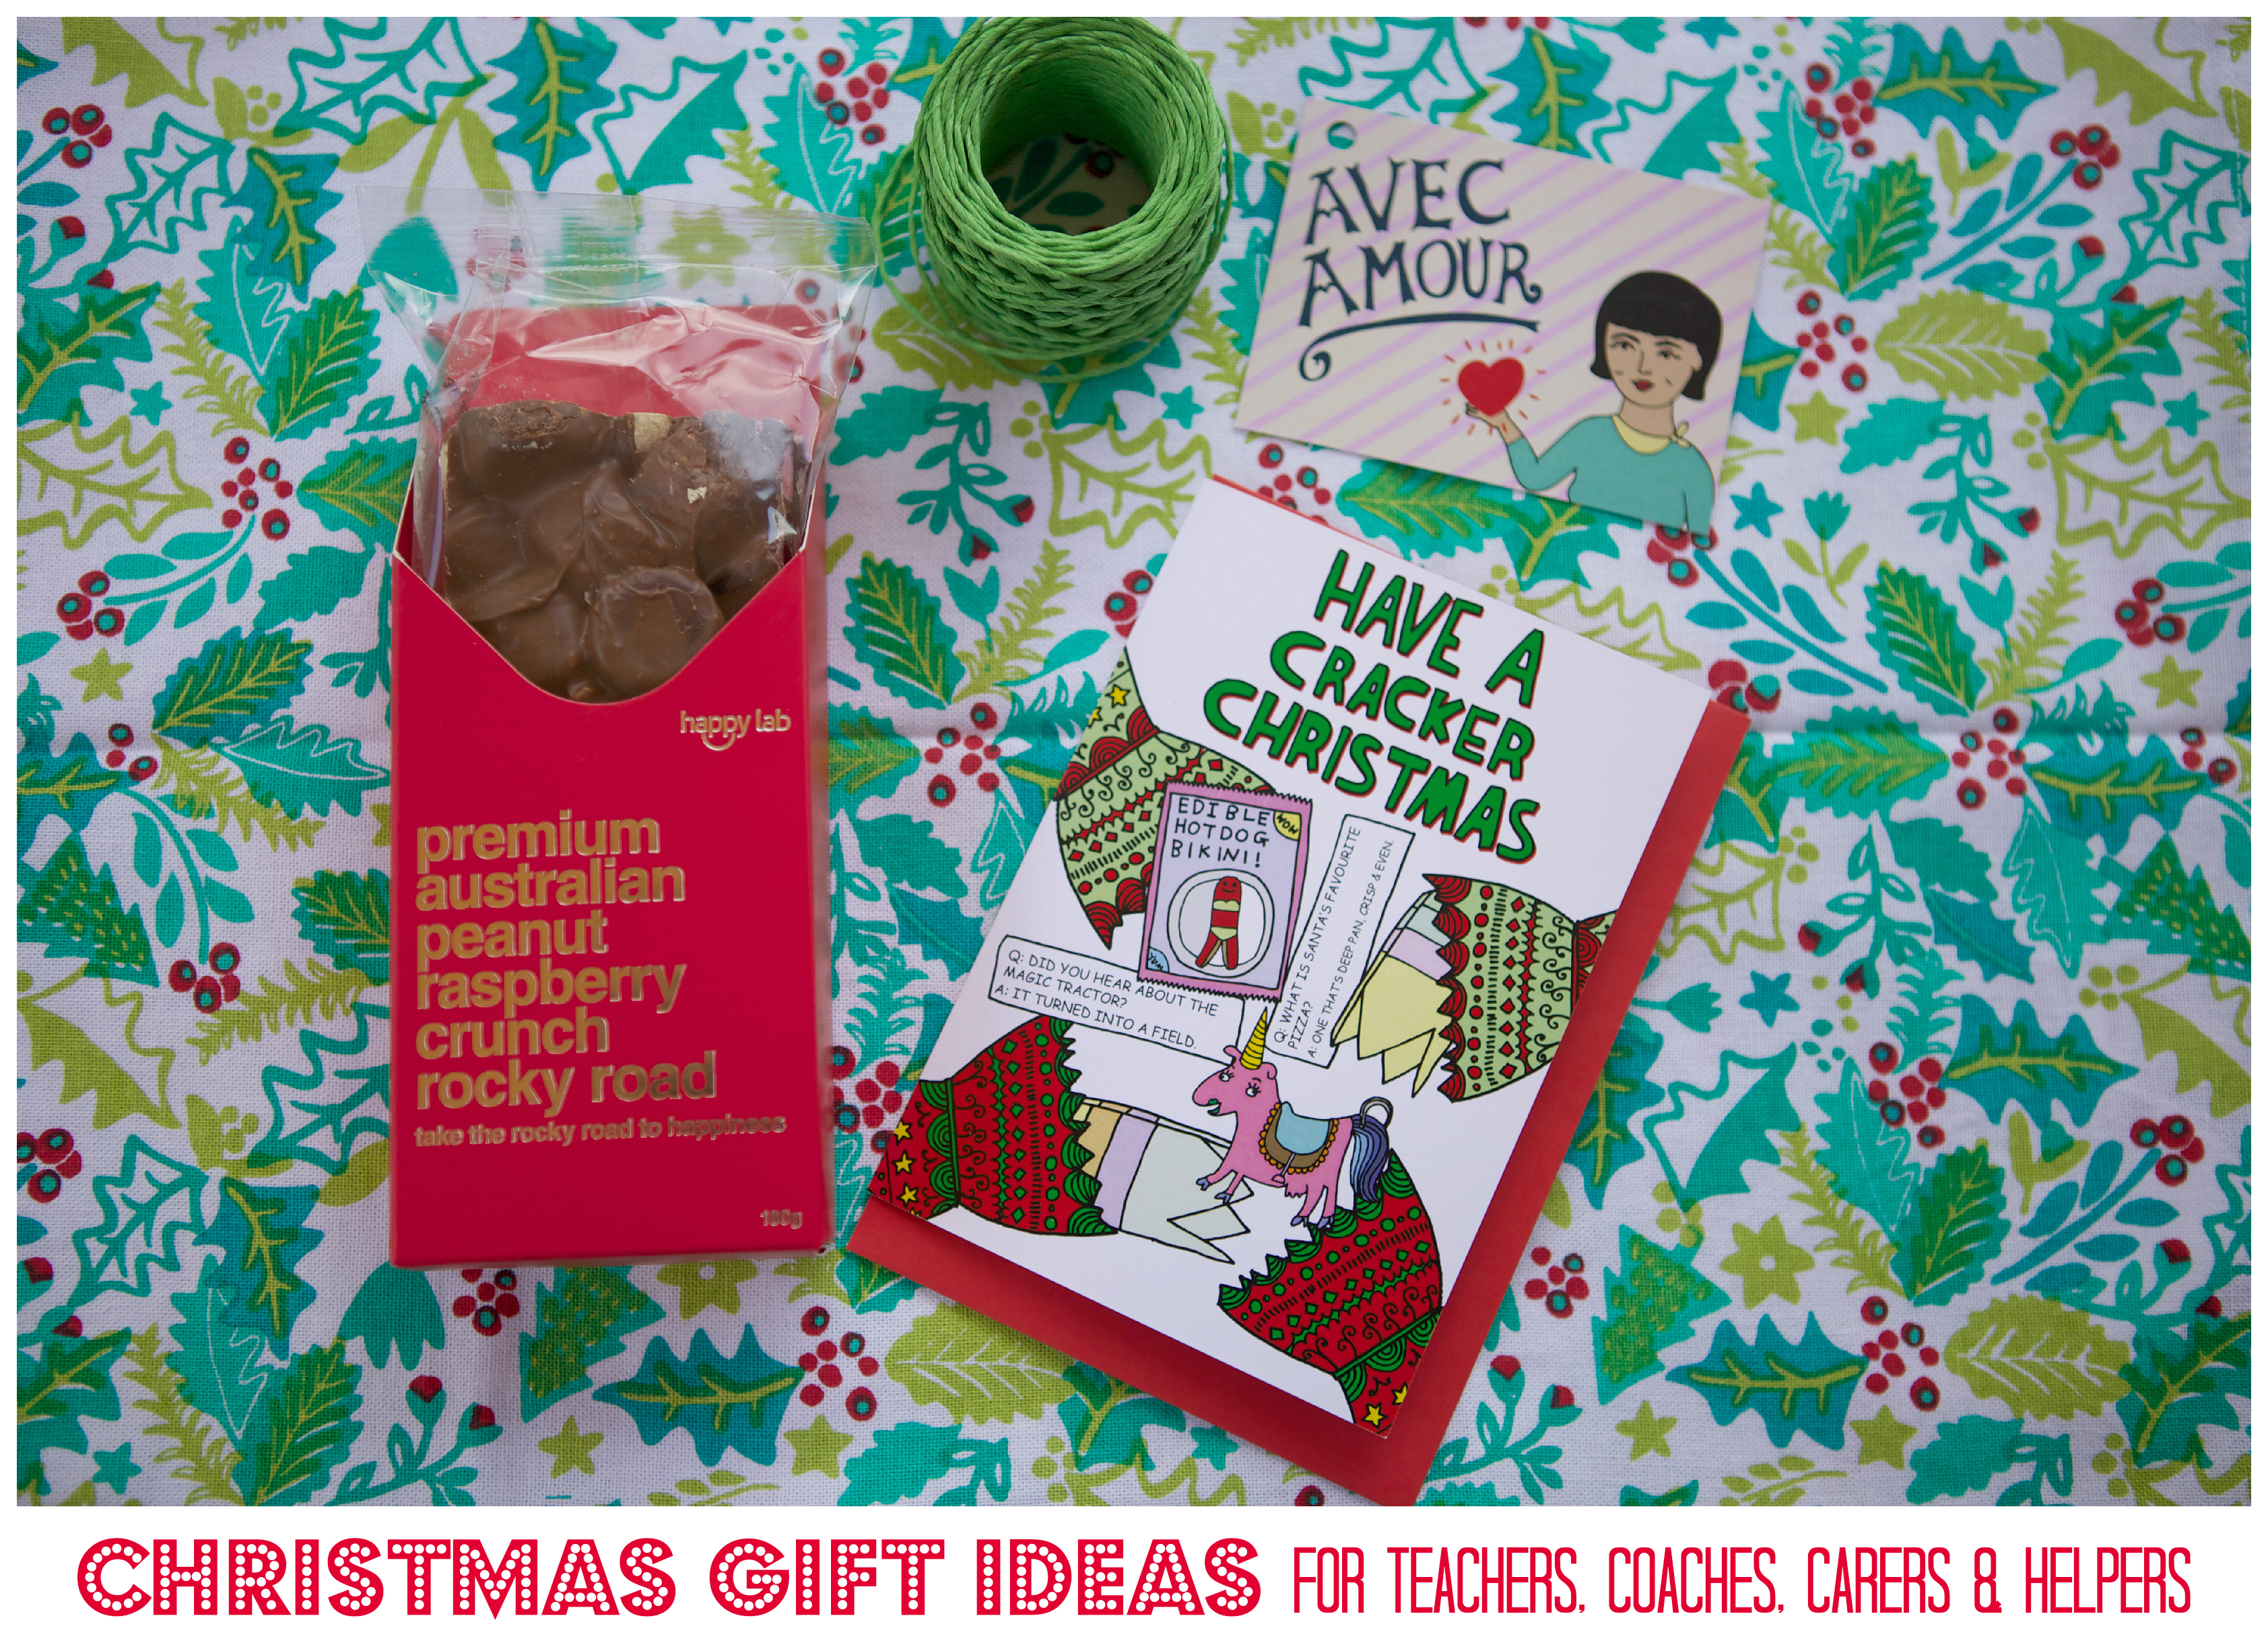 Christmas Gift Ideas for Teachers Coaches Friends & Helpers